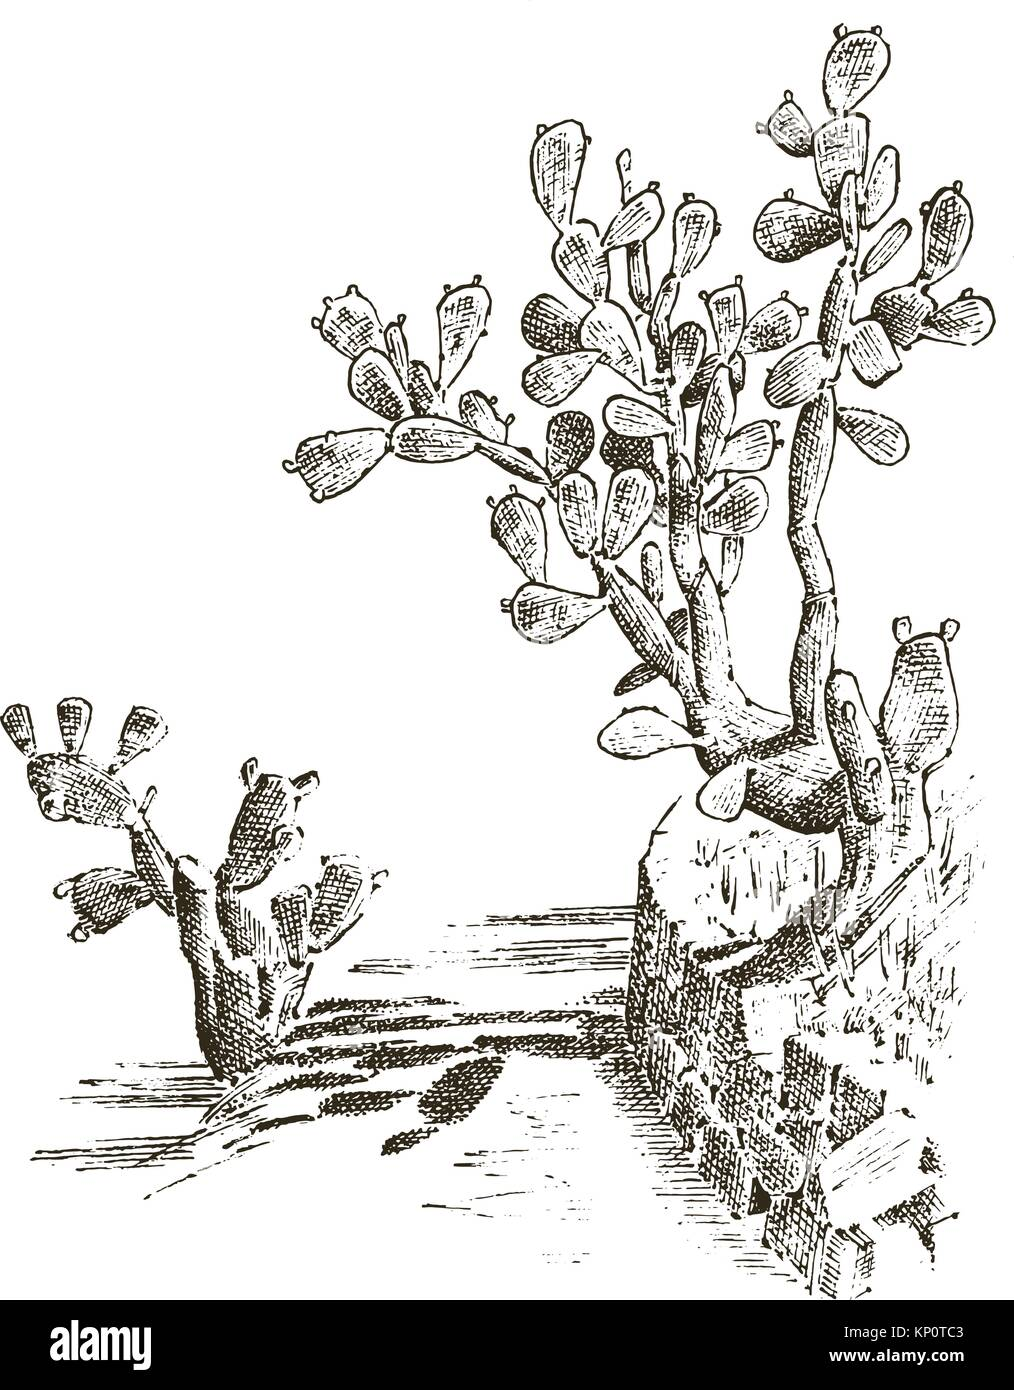 Prickly Pear Cactus Plants Engraved Hand Drawn In Old Sketch Vintage Style Mexican Opuntia Flora And Fauna Botanical Garden